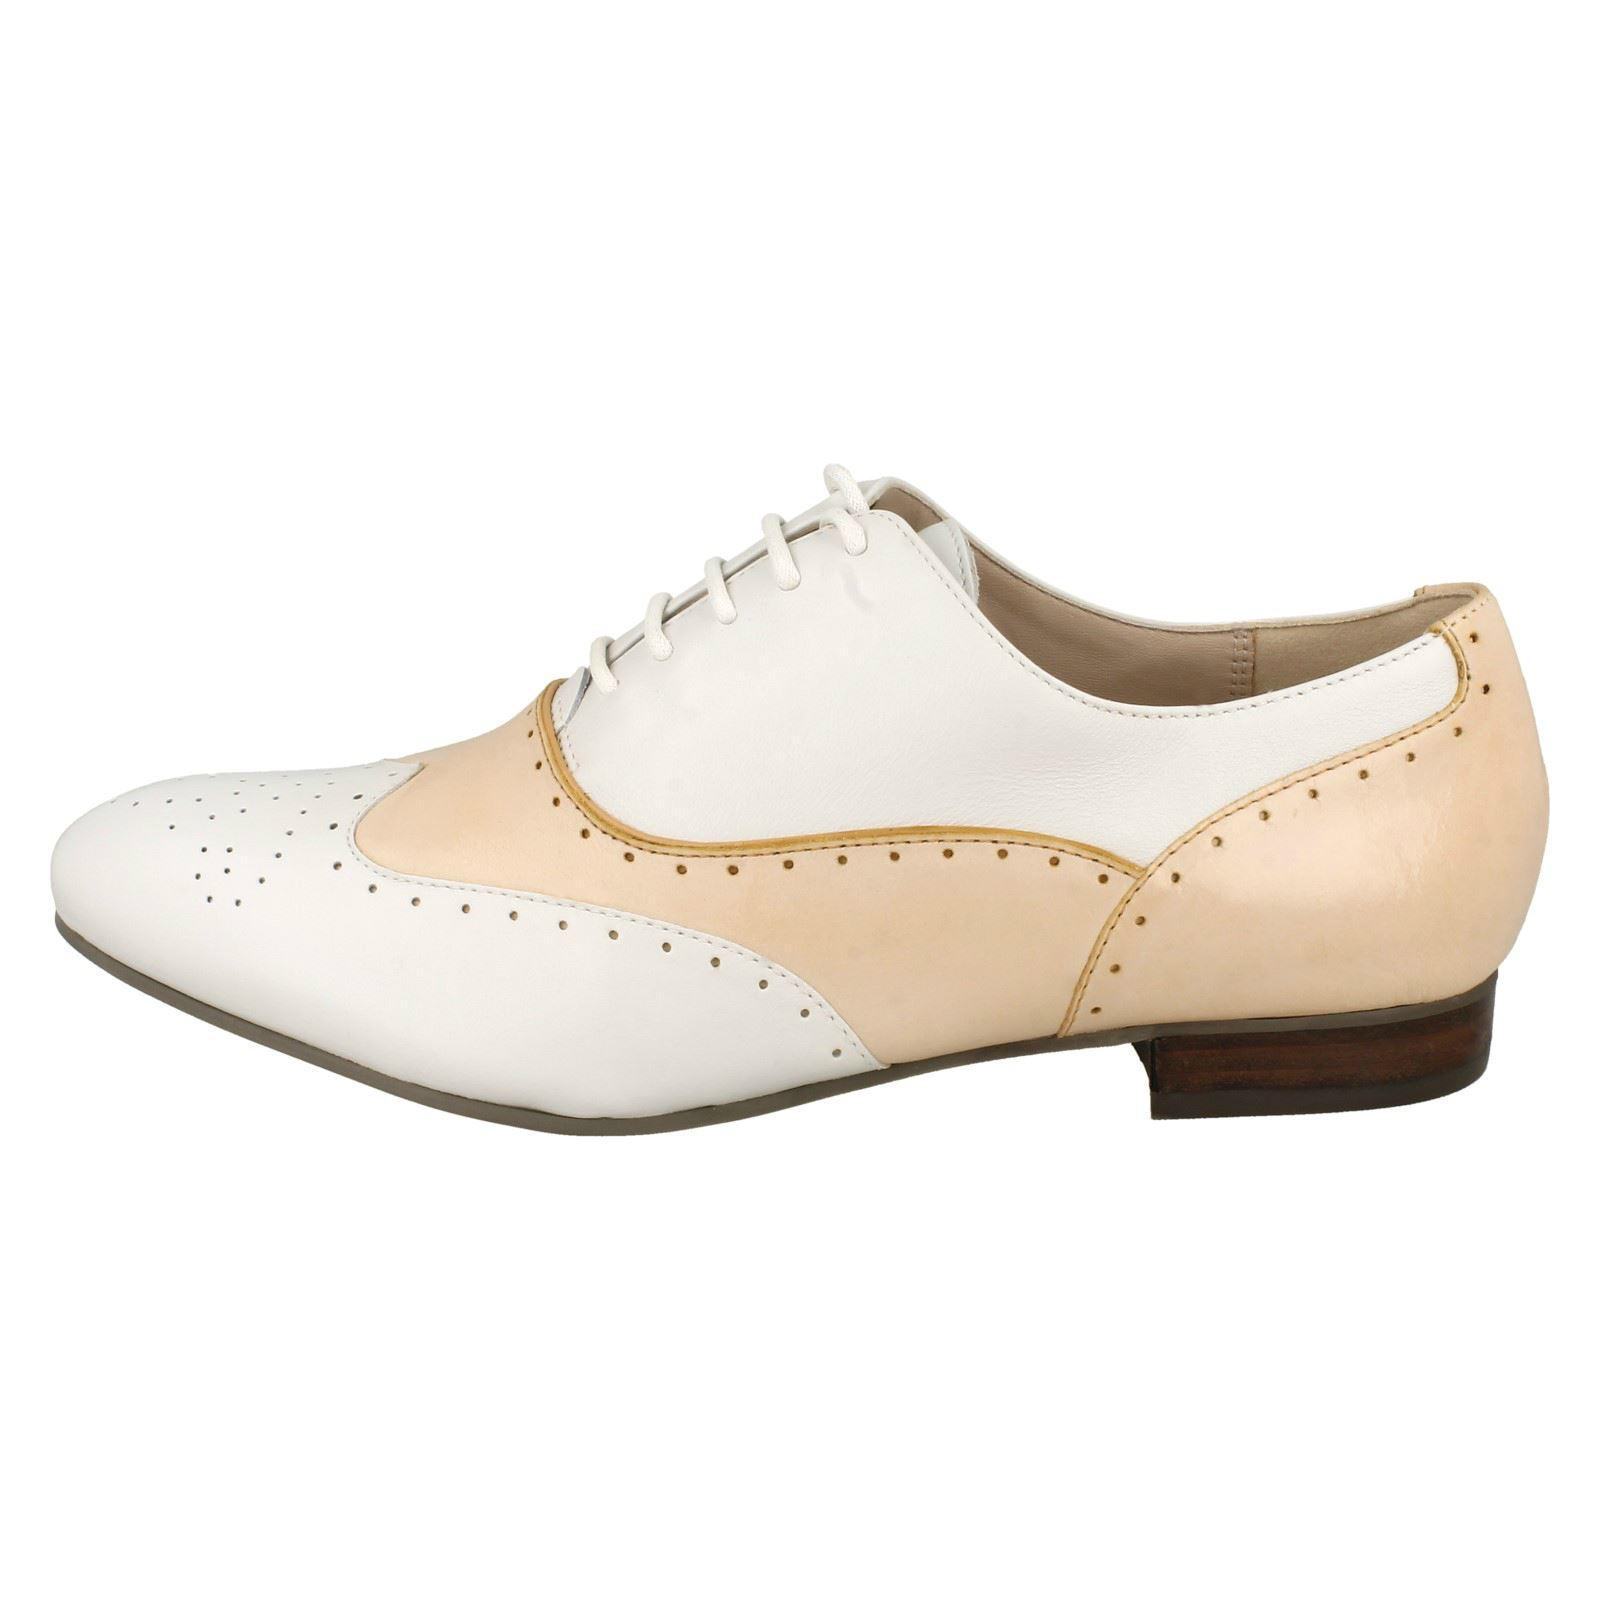 casuales zapatos Willow Damas Ennis Tan estilo Brogue Clarks elegantes beige de Light fqqEZ